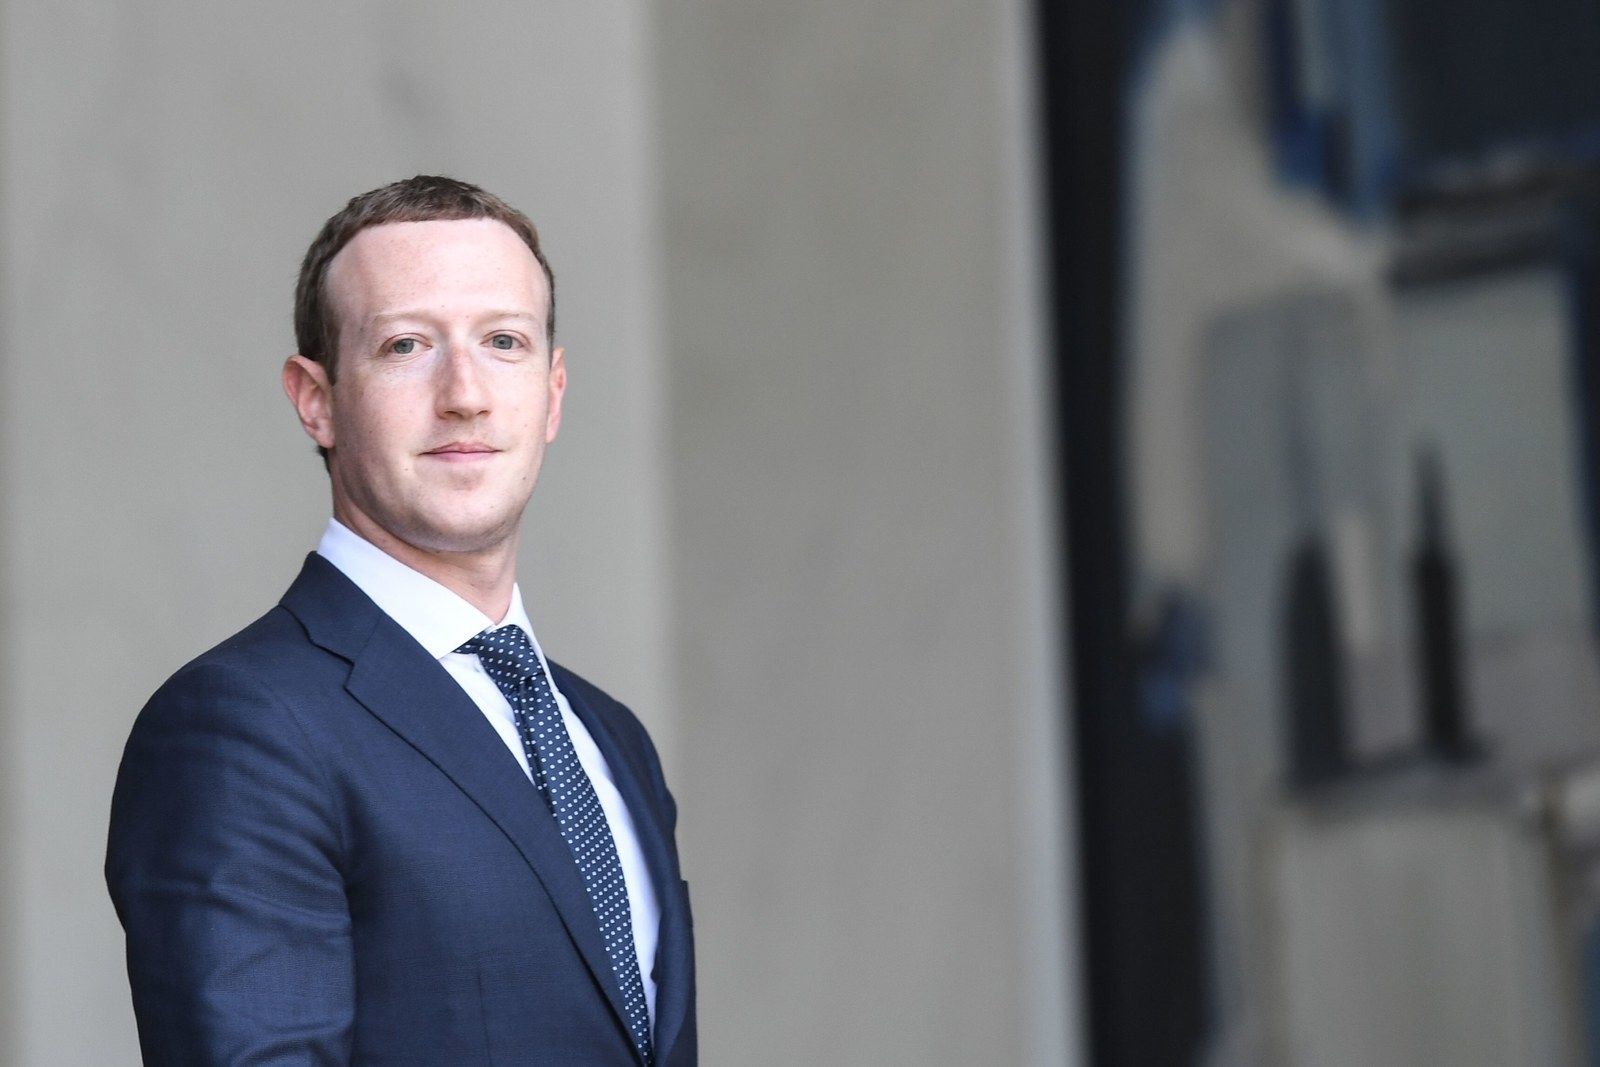 Facebook Is Bringing In Stricter Ad Rules For Countries Going To The Polls In The Next Few Months